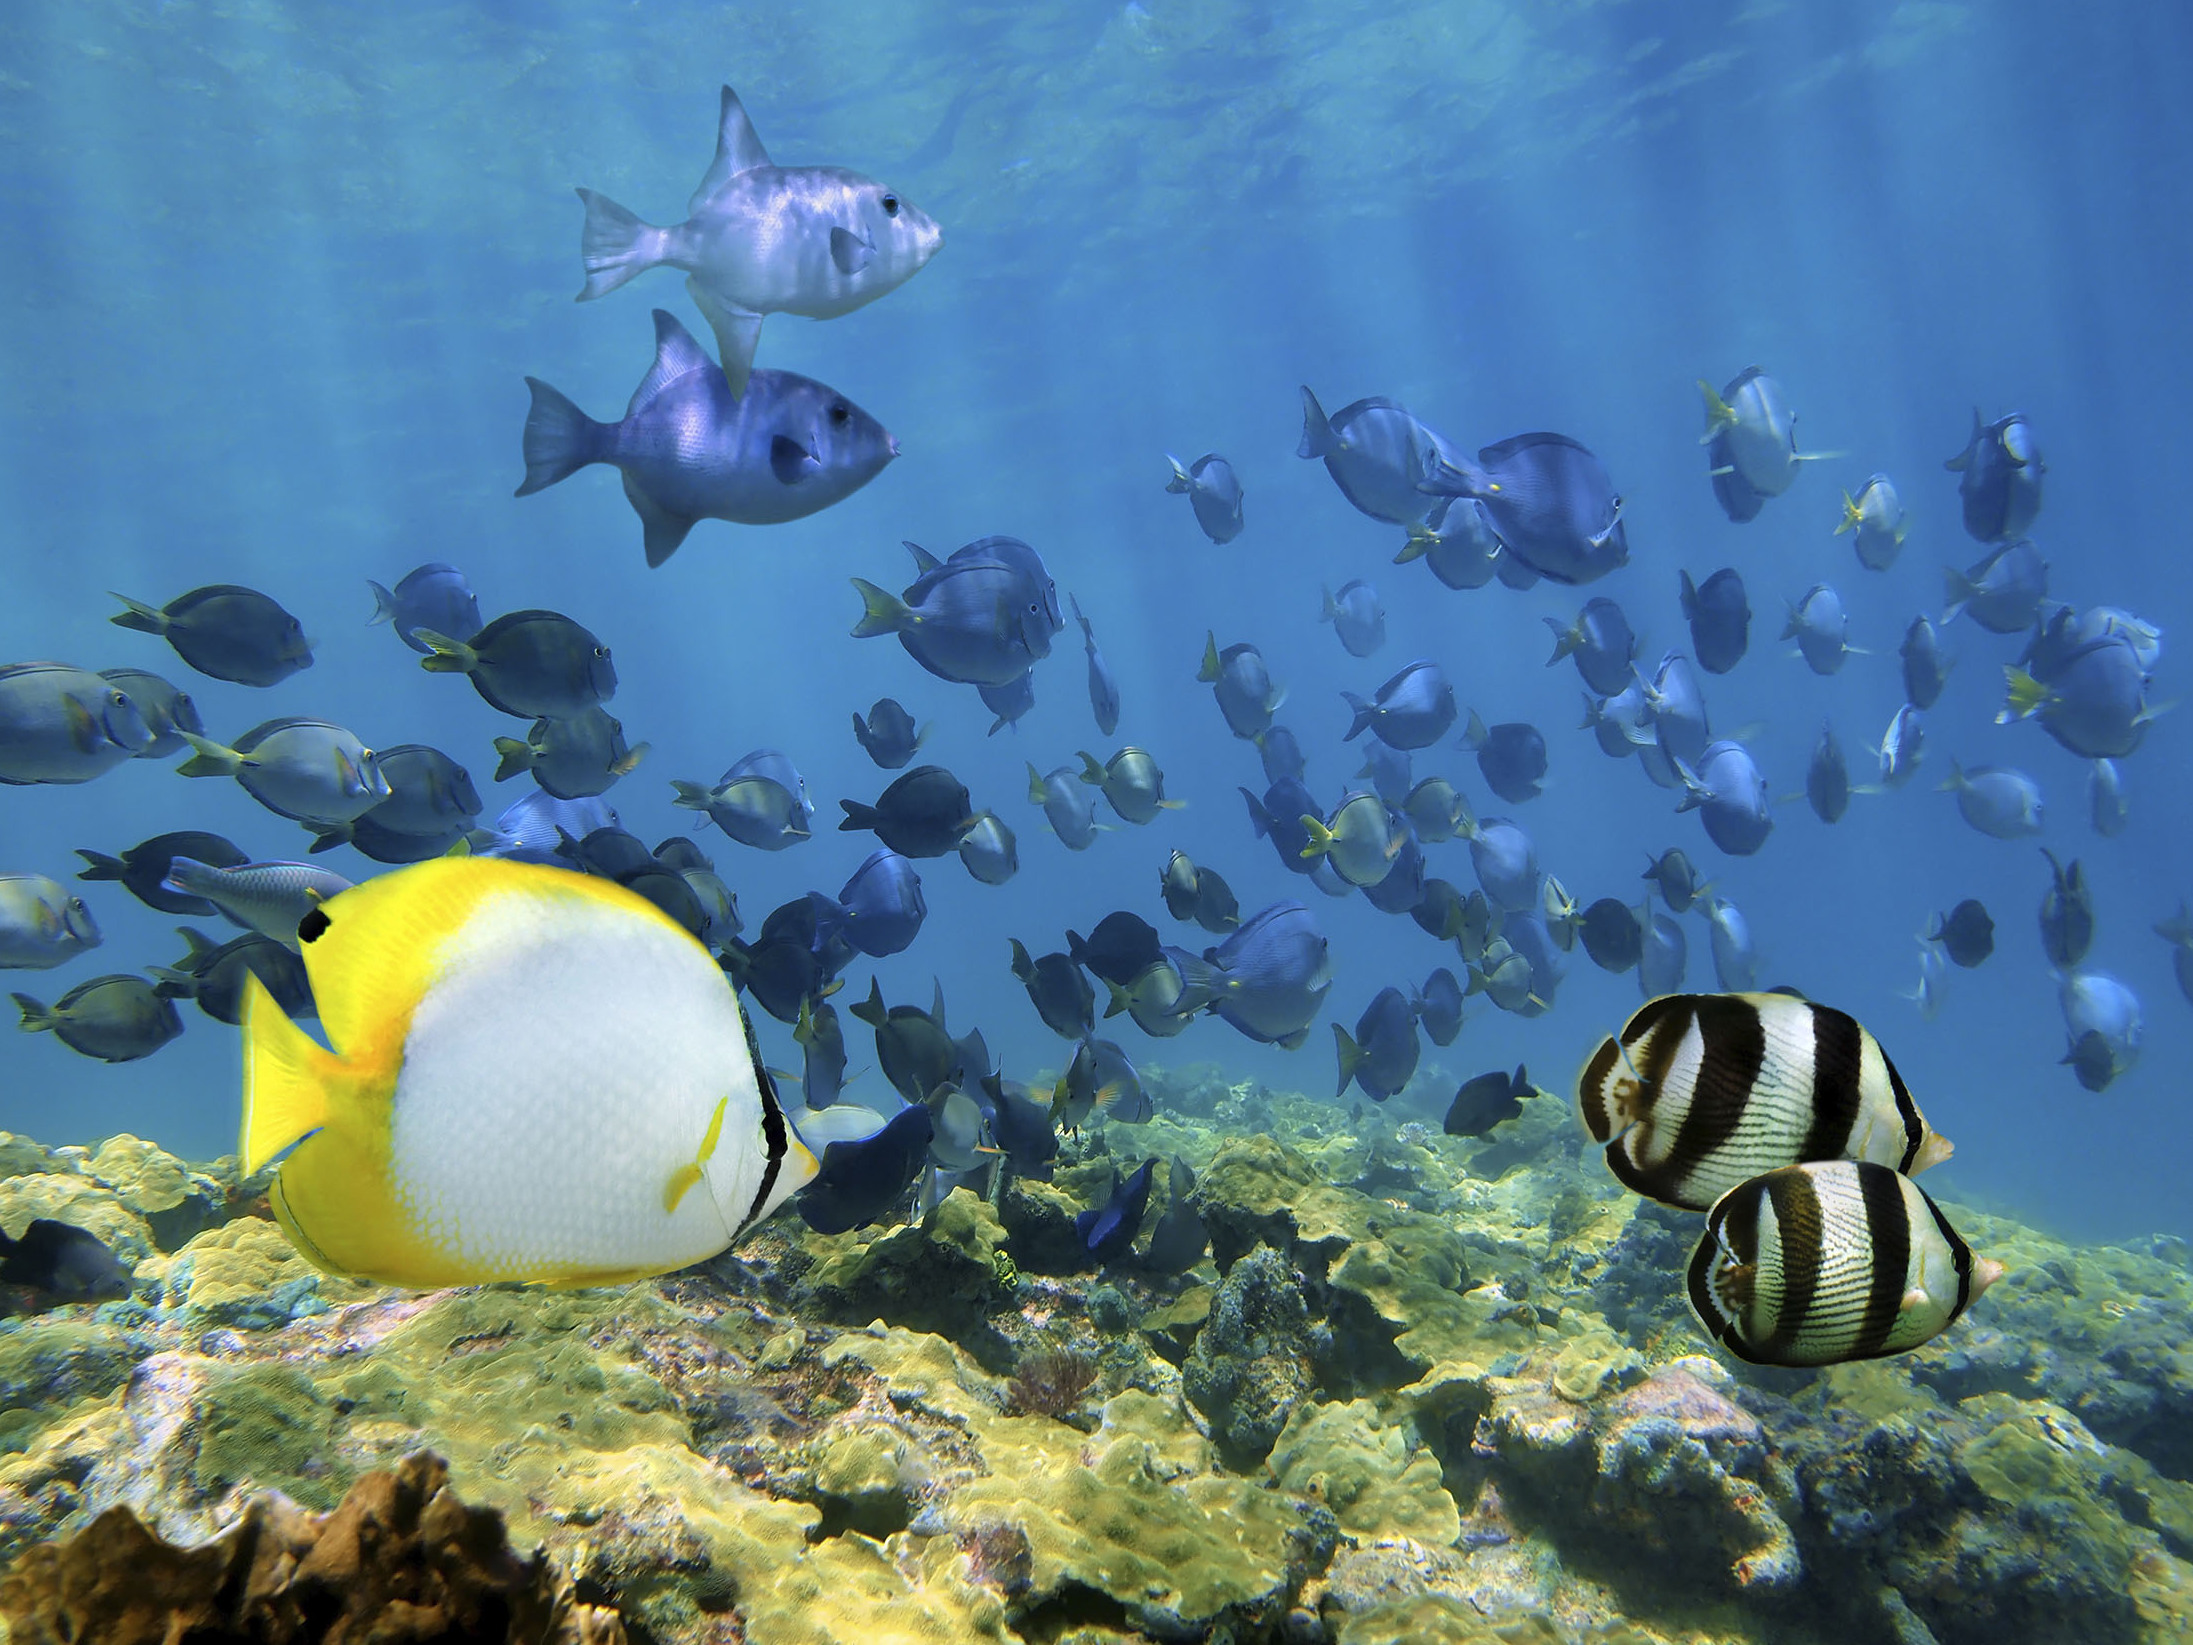 U.S. Biologists Keen To Explore, Help Protect Cuba's Wild Places